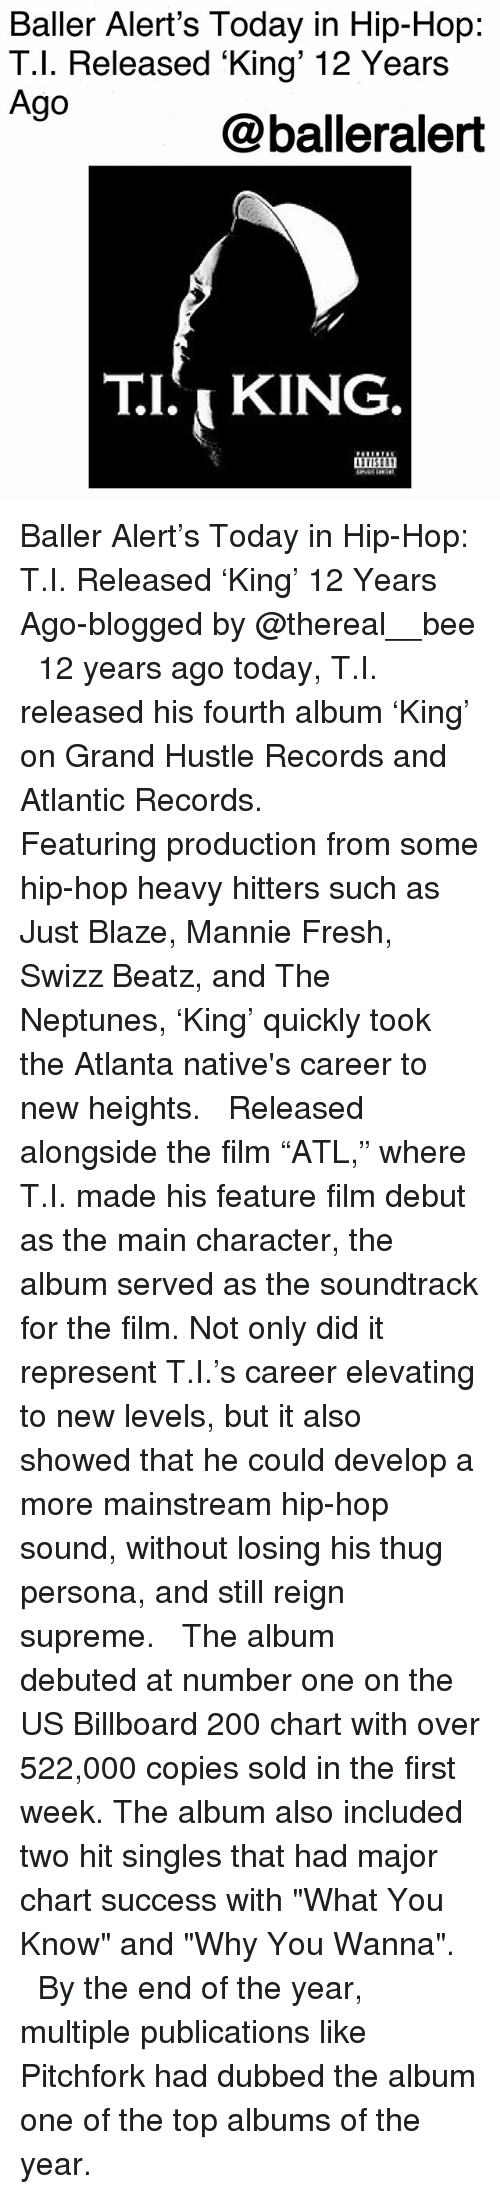 """reign: Baller Alert's Today in Hip-Hop:  T.l. Released King' 12 Years  Ago  @balleralert  TI,KING Baller Alert's Today in Hip-Hop: T.I. Released 'King' 12 Years Ago-blogged by @thereal__bee ⠀⠀⠀⠀⠀⠀⠀⠀⠀ ⠀⠀ 12 years ago today, T.I. released his fourth album 'King' on Grand Hustle Records and Atlantic Records. ⠀⠀⠀⠀⠀⠀⠀⠀⠀ ⠀⠀ Featuring production from some hip-hop heavy hitters such as Just Blaze, Mannie Fresh, Swizz Beatz, and The Neptunes, 'King' quickly took the Atlanta native's career to new heights. ⠀⠀⠀⠀⠀⠀⠀⠀⠀ ⠀⠀ Released alongside the film """"ATL,"""" where T.I. made his feature film debut as the main character, the album served as the soundtrack for the film. Not only did it represent T.I.'s career elevating to new levels, but it also showed that he could develop a more mainstream hip-hop sound, without losing his thug persona, and still reign supreme. ⠀⠀⠀⠀⠀⠀⠀⠀⠀ ⠀⠀ The album debuted at number one on the US Billboard 200 chart with over 522,000 copies sold in the first week. The album also included two hit singles that had major chart success with """"What You Know"""" and """"Why You Wanna"""". ⠀⠀⠀⠀⠀⠀⠀⠀⠀ ⠀⠀ By the end of the year, multiple publications like Pitchfork had dubbed the album one of the top albums of the year."""